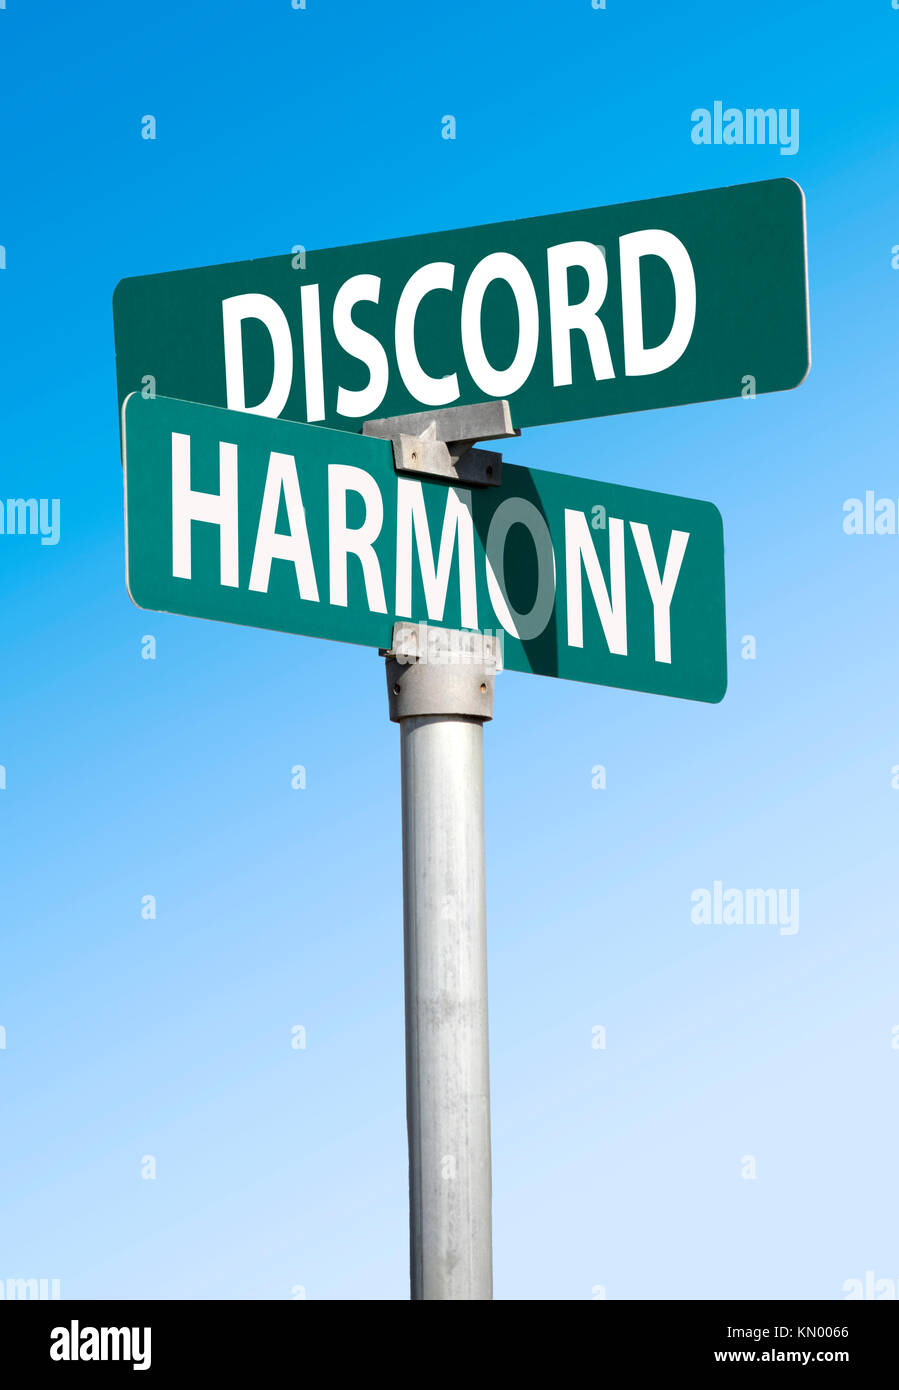 discord and harmony sign - Stock Image